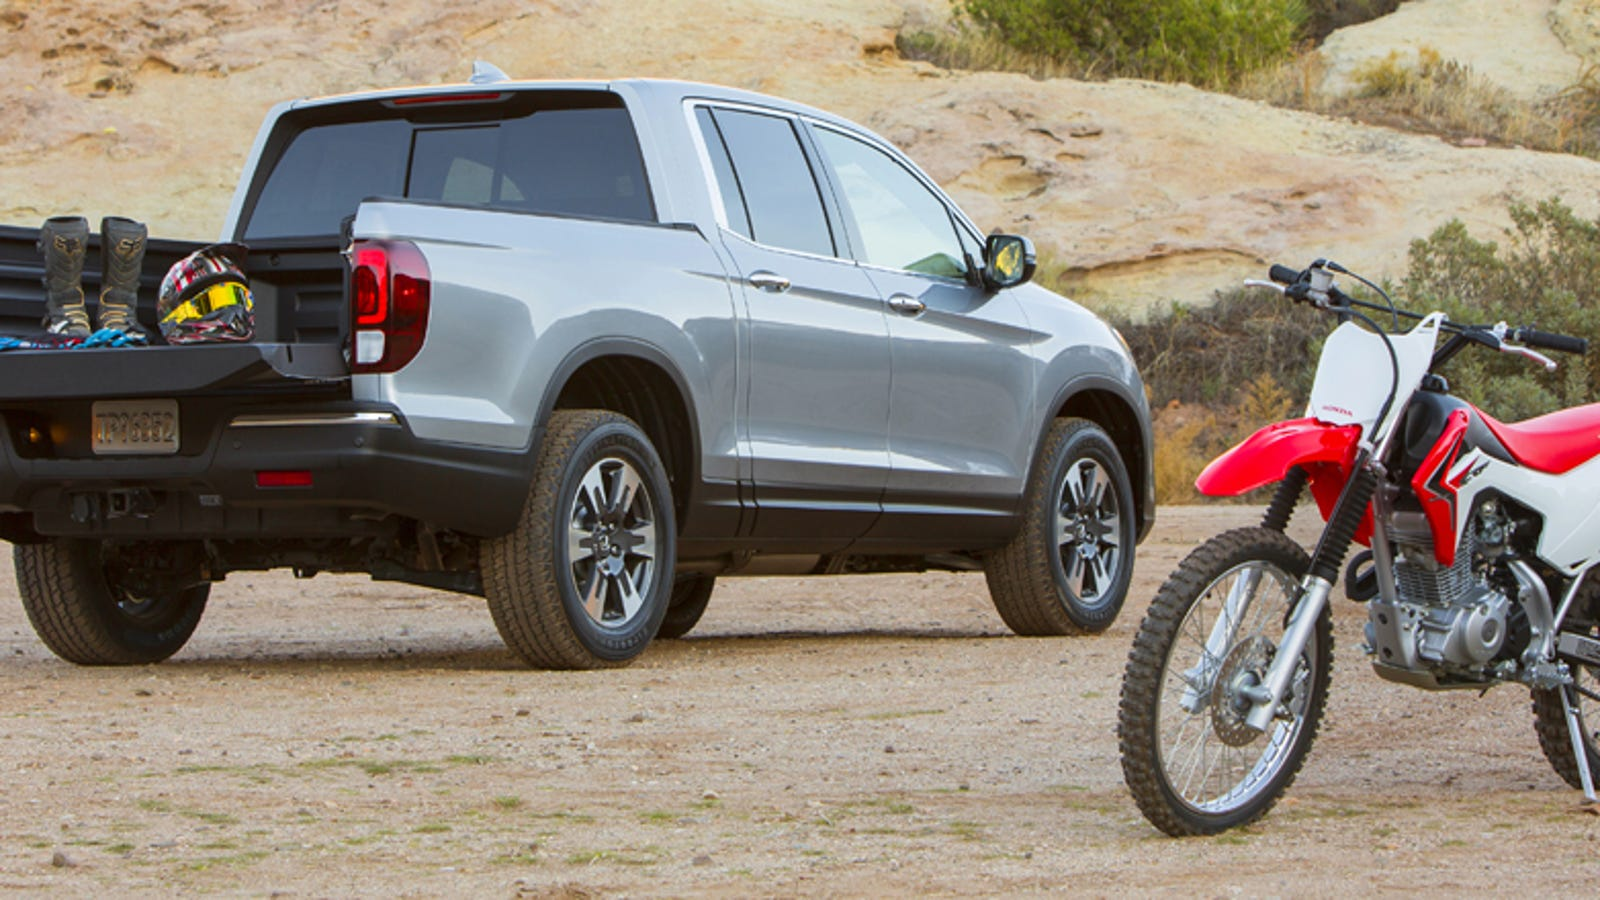 New Honda Ridgeline Has More Bed Than A Comparable Tacoma Frontier Or Colorado